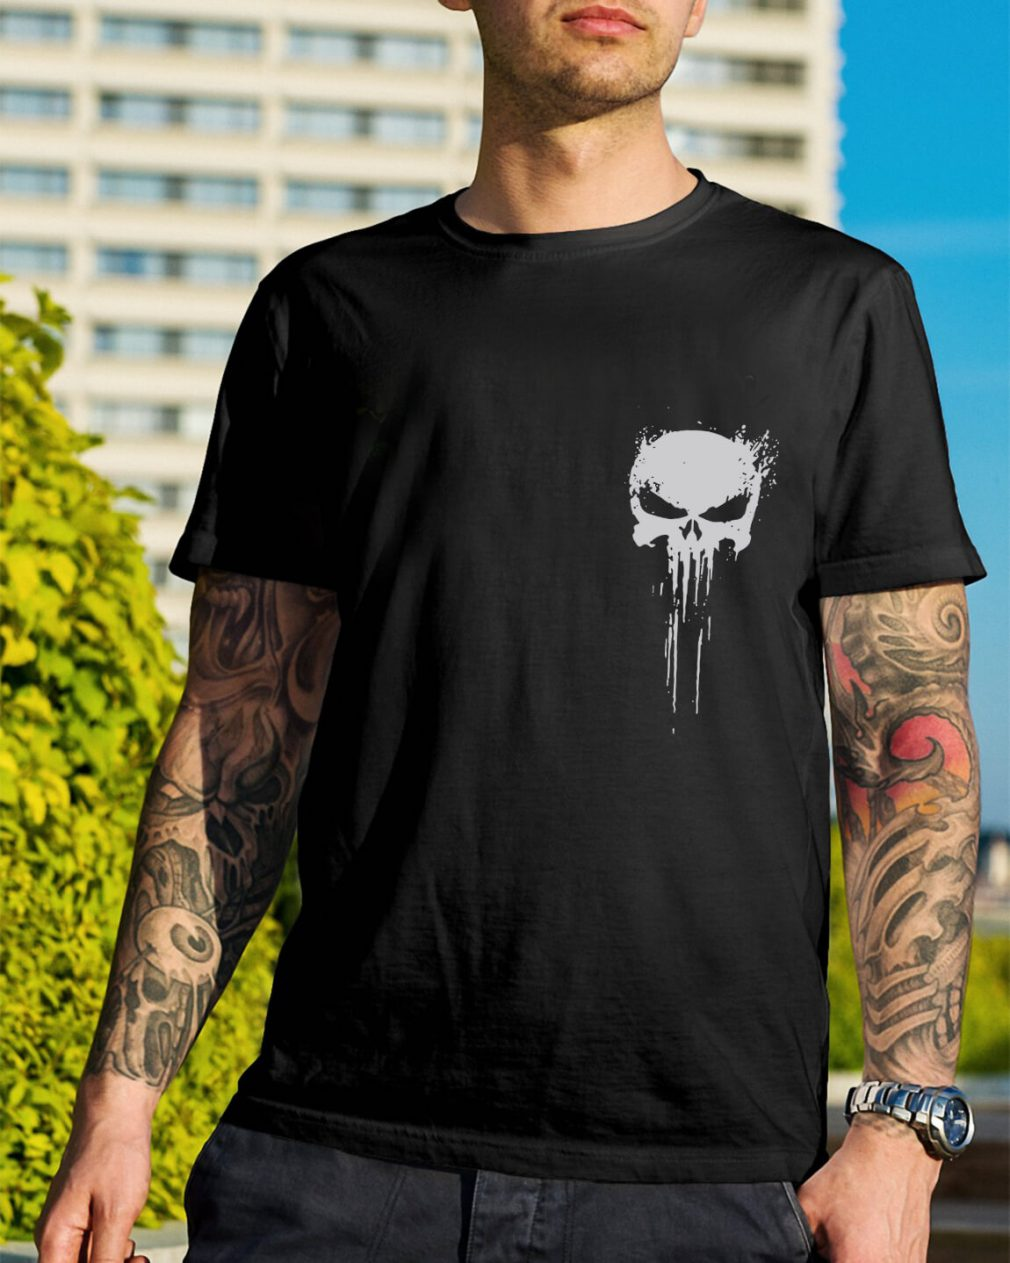 Skull - Innocents suffer and the guilty must be punished my battlefield shirt